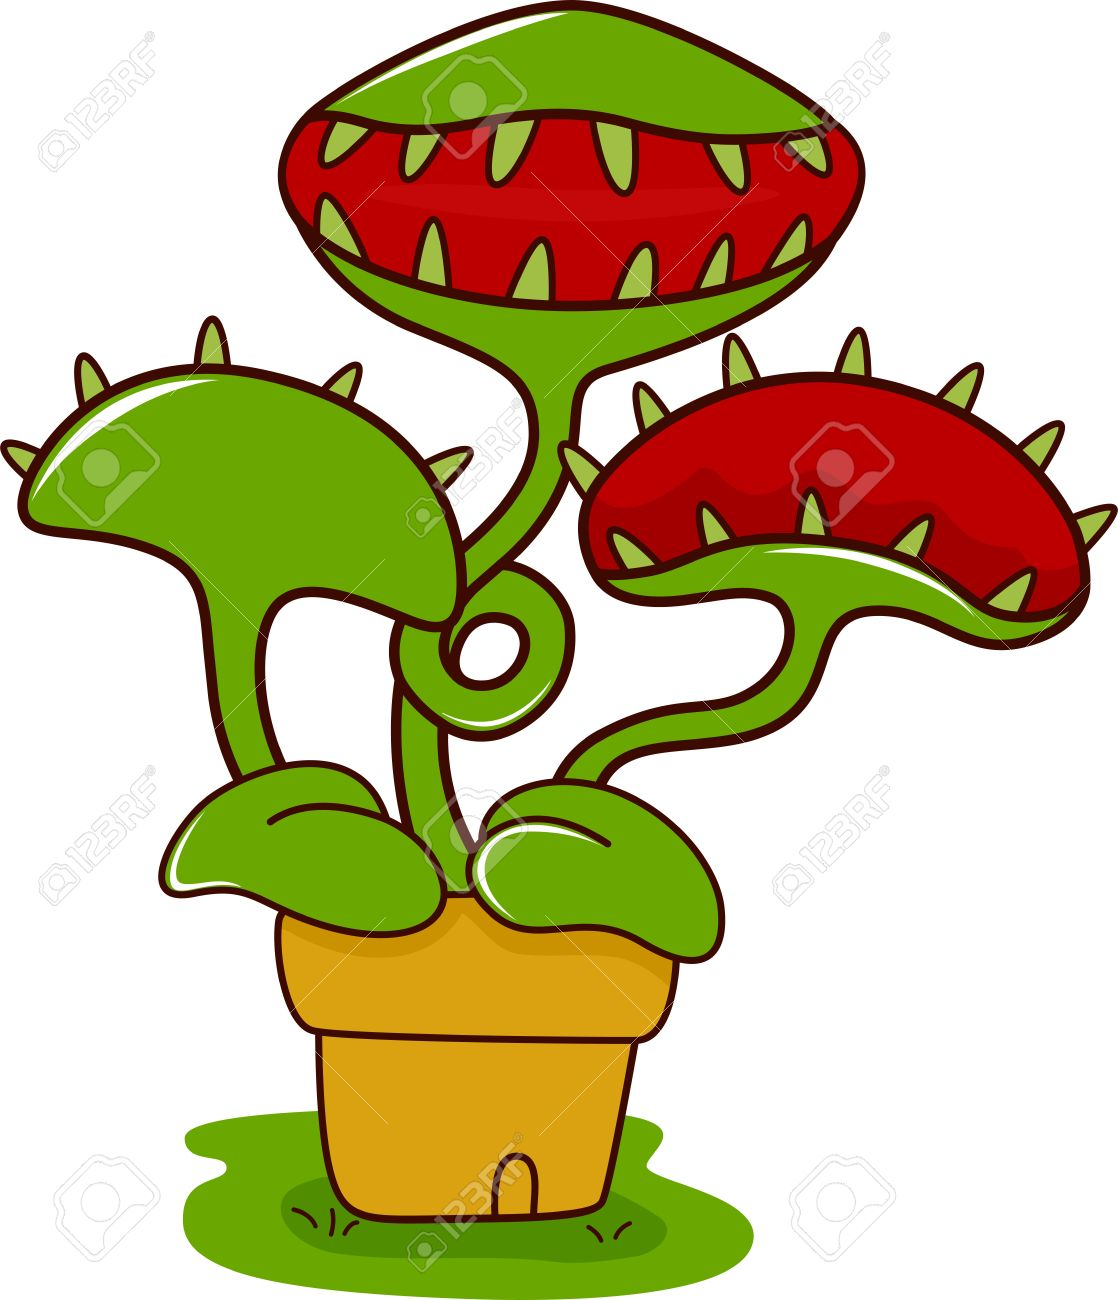 Illustration Of A Venus Flytrap With Its Mouth Wide Open Stock.